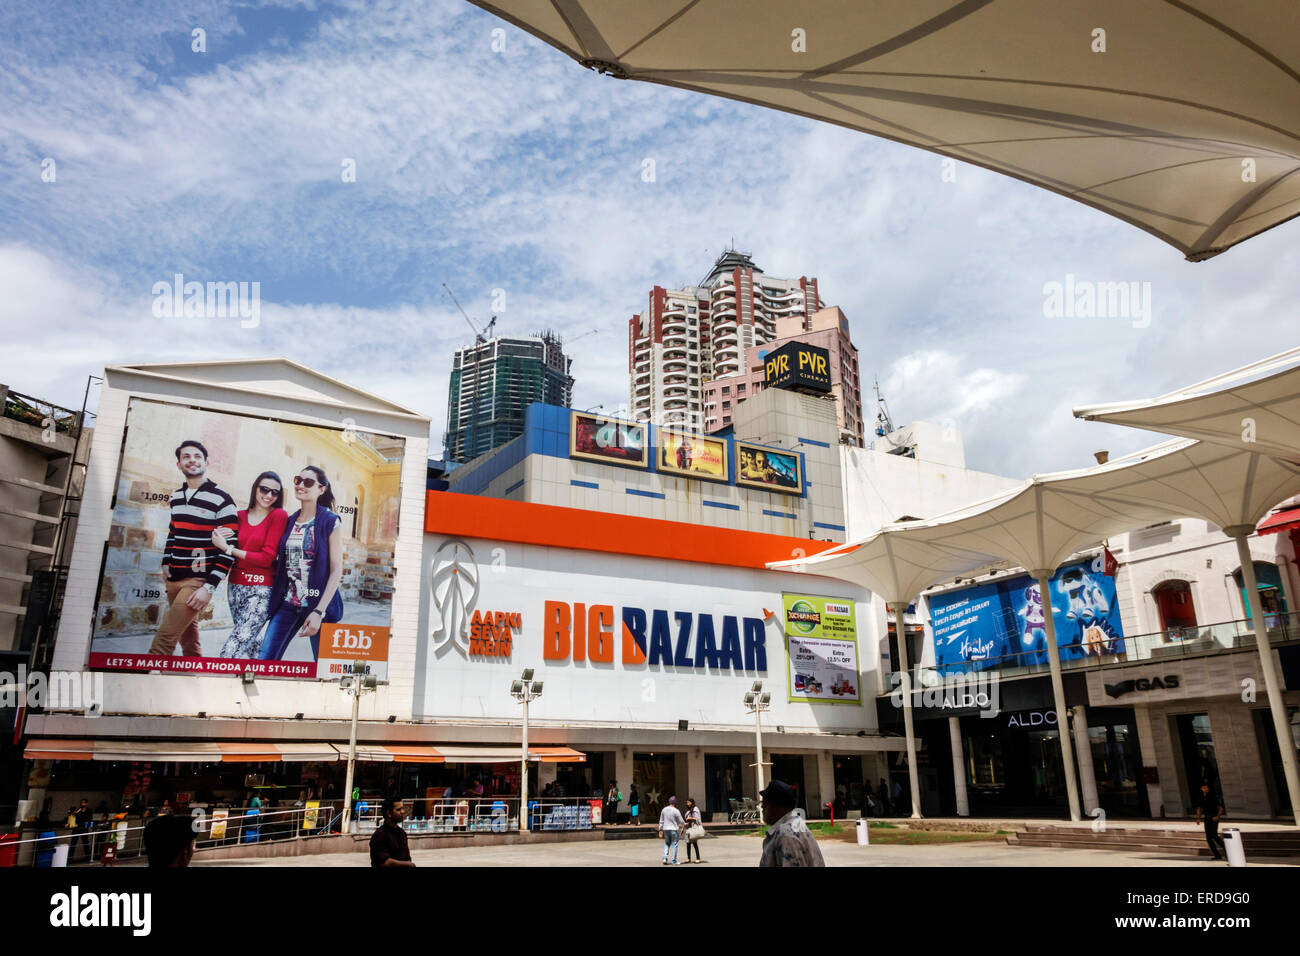 departmentalization of big bazaar Through departmentalization, their teachers specialize in two subjects, as well as teach those subjects in the same lesson when the students learn math, they will then be able to apply that to what they learn in science.